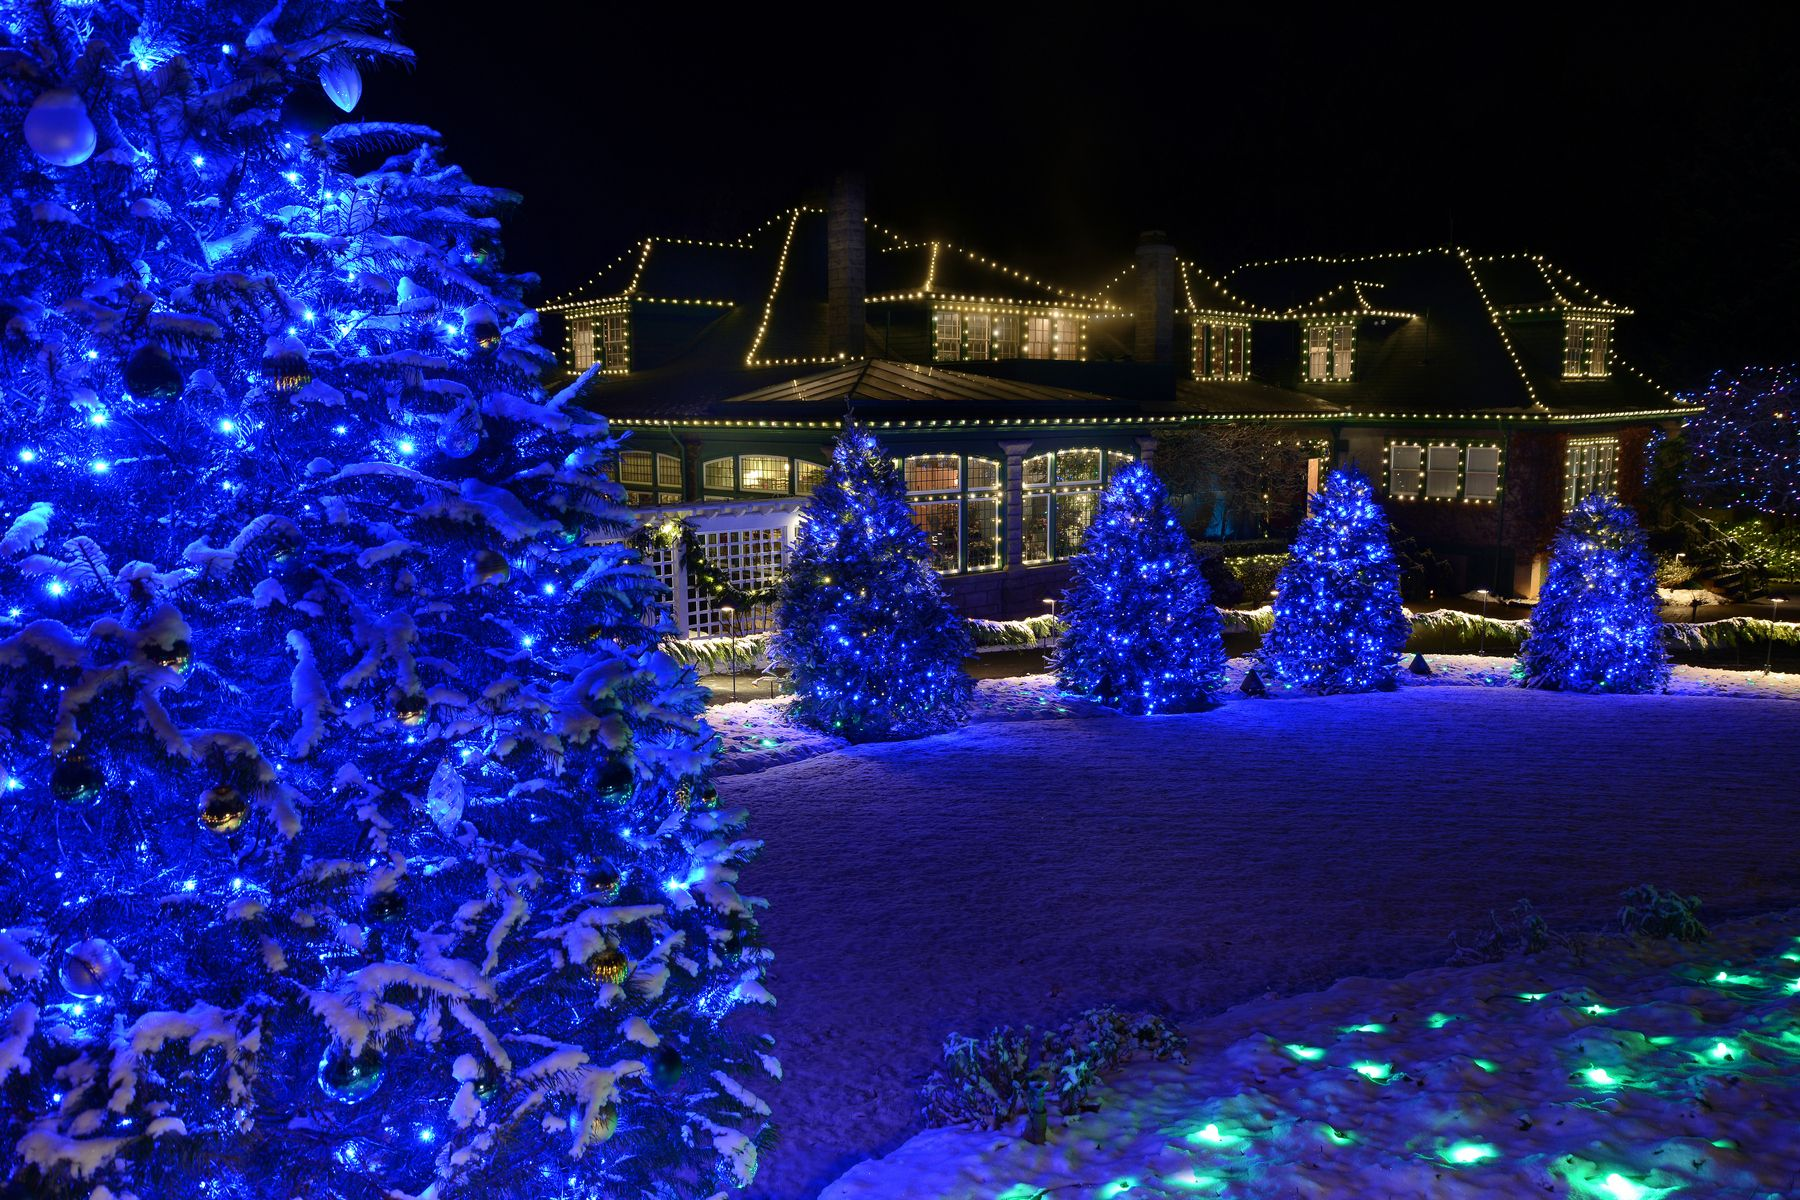 Victoria Canada Visiting At Christmas With Images Christmas Tours